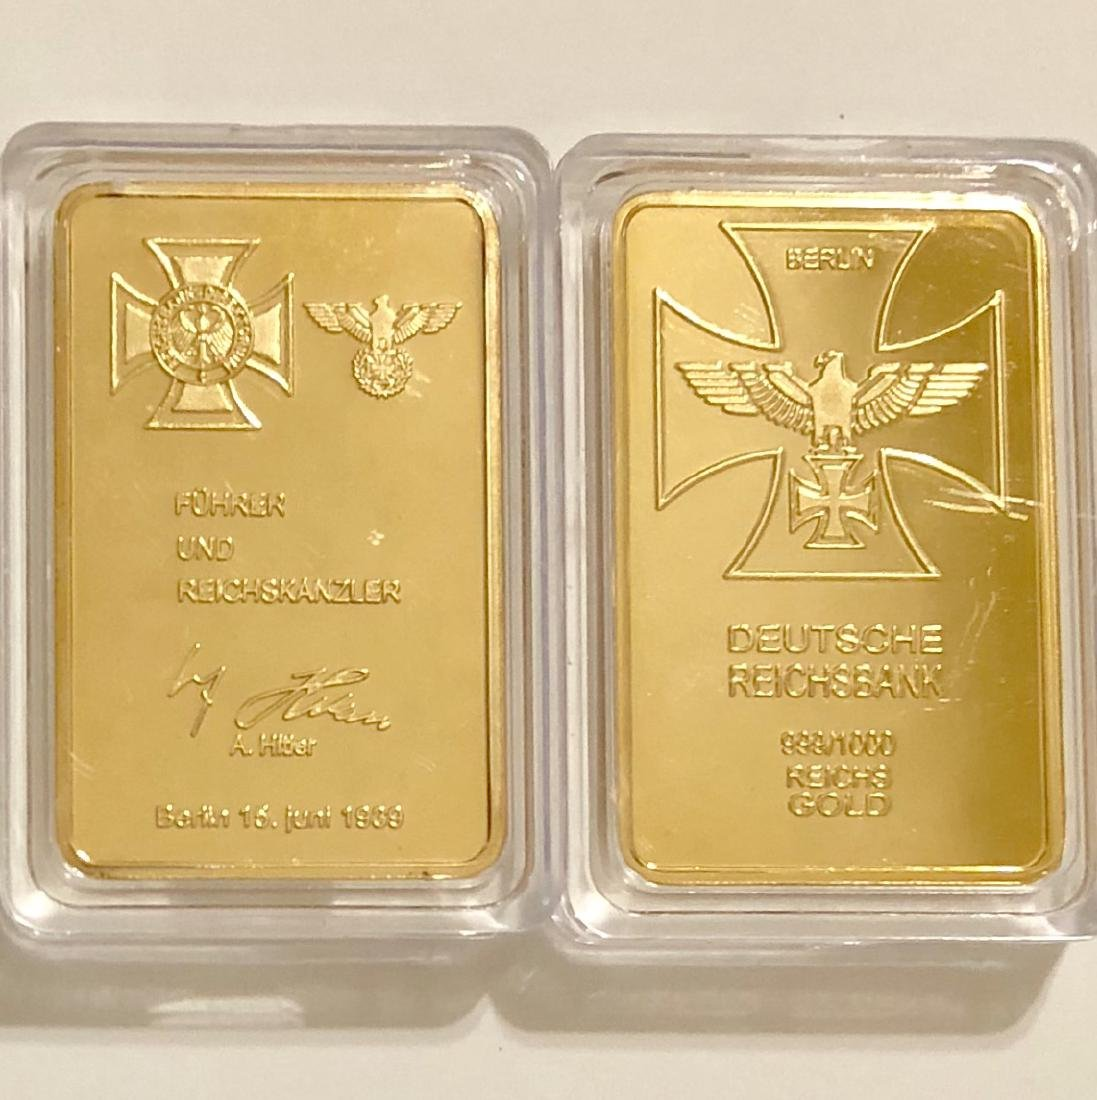 1939 ADOLF HITLER .999/1000 Gold Clad Bullion Bar